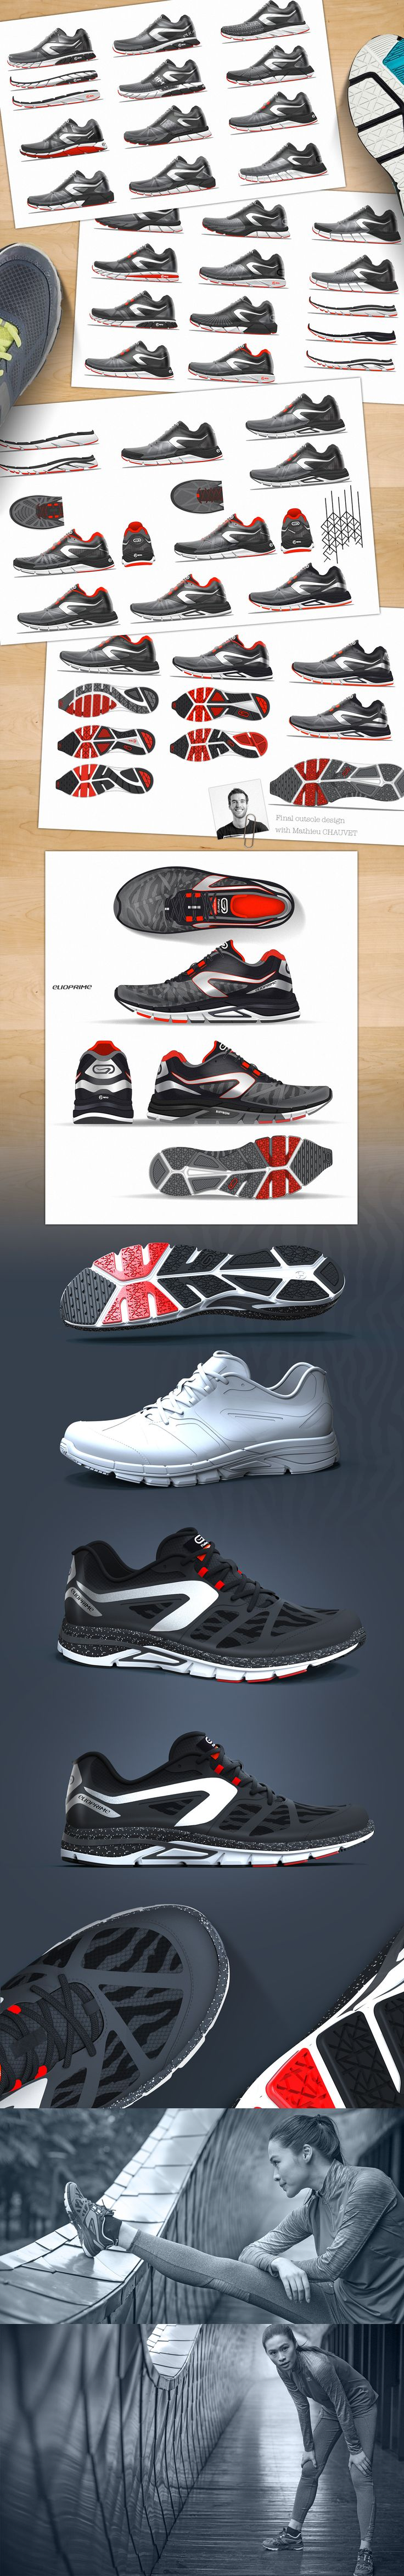 Footwear design for KALENJI / DECATHLON group